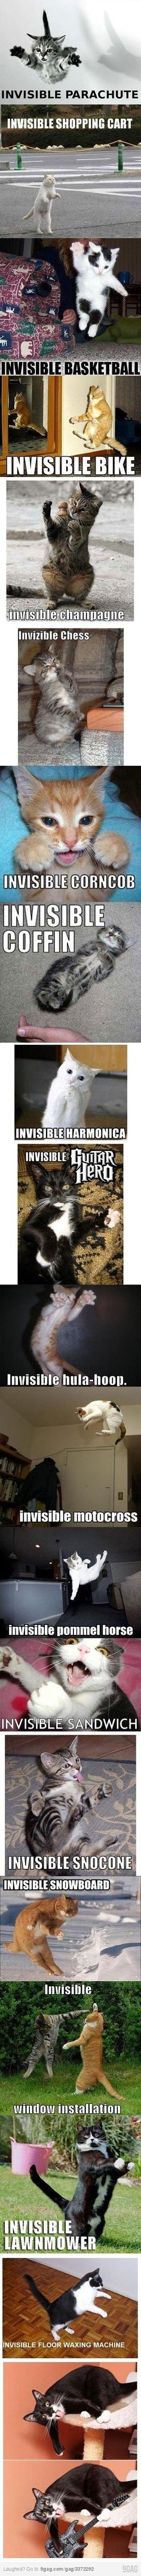 cats and invisible things lol by Schd gatos y cosas invisibles jajaja por Schd I Love Cats, Crazy Cats, Silly Cats, Funny Kitties, Tierischer Humor, Cats Humor, Funny Humor, Life Humor, Cat Jokes